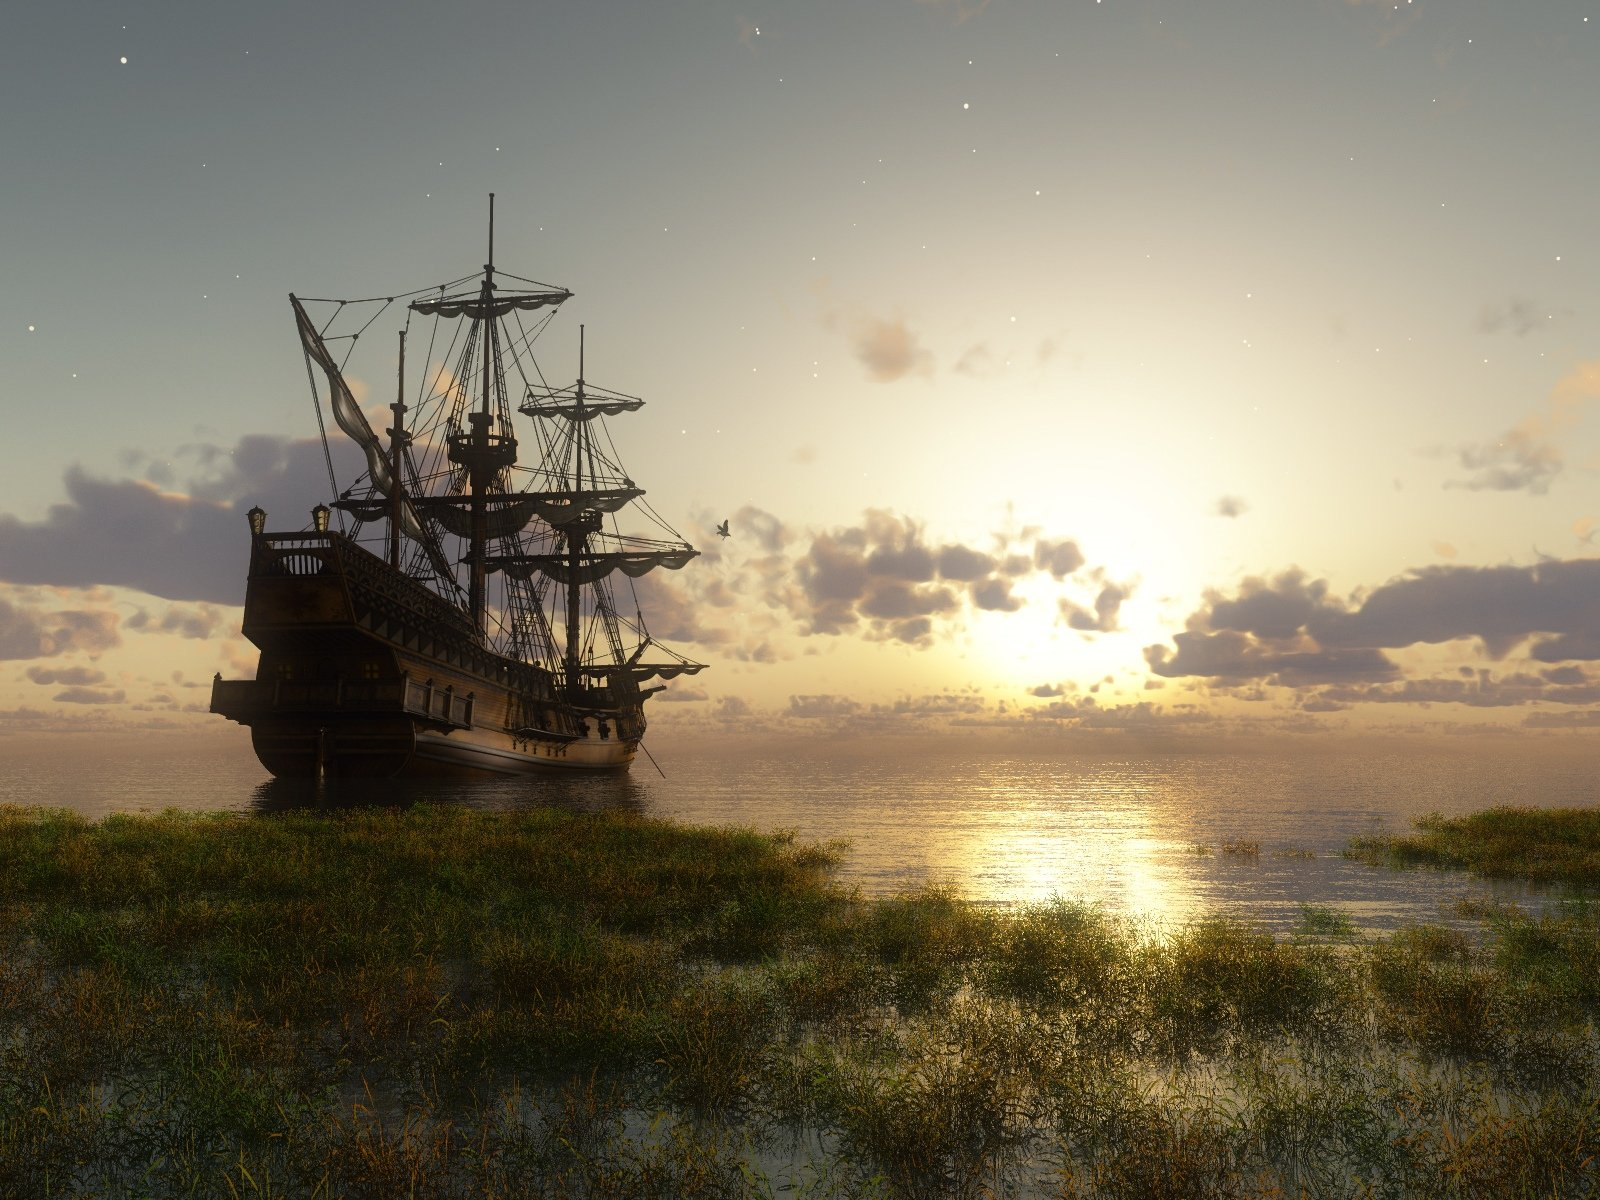 Great Sailing Ships 3D   Photo 14 of 36 phombocom 1600x1200